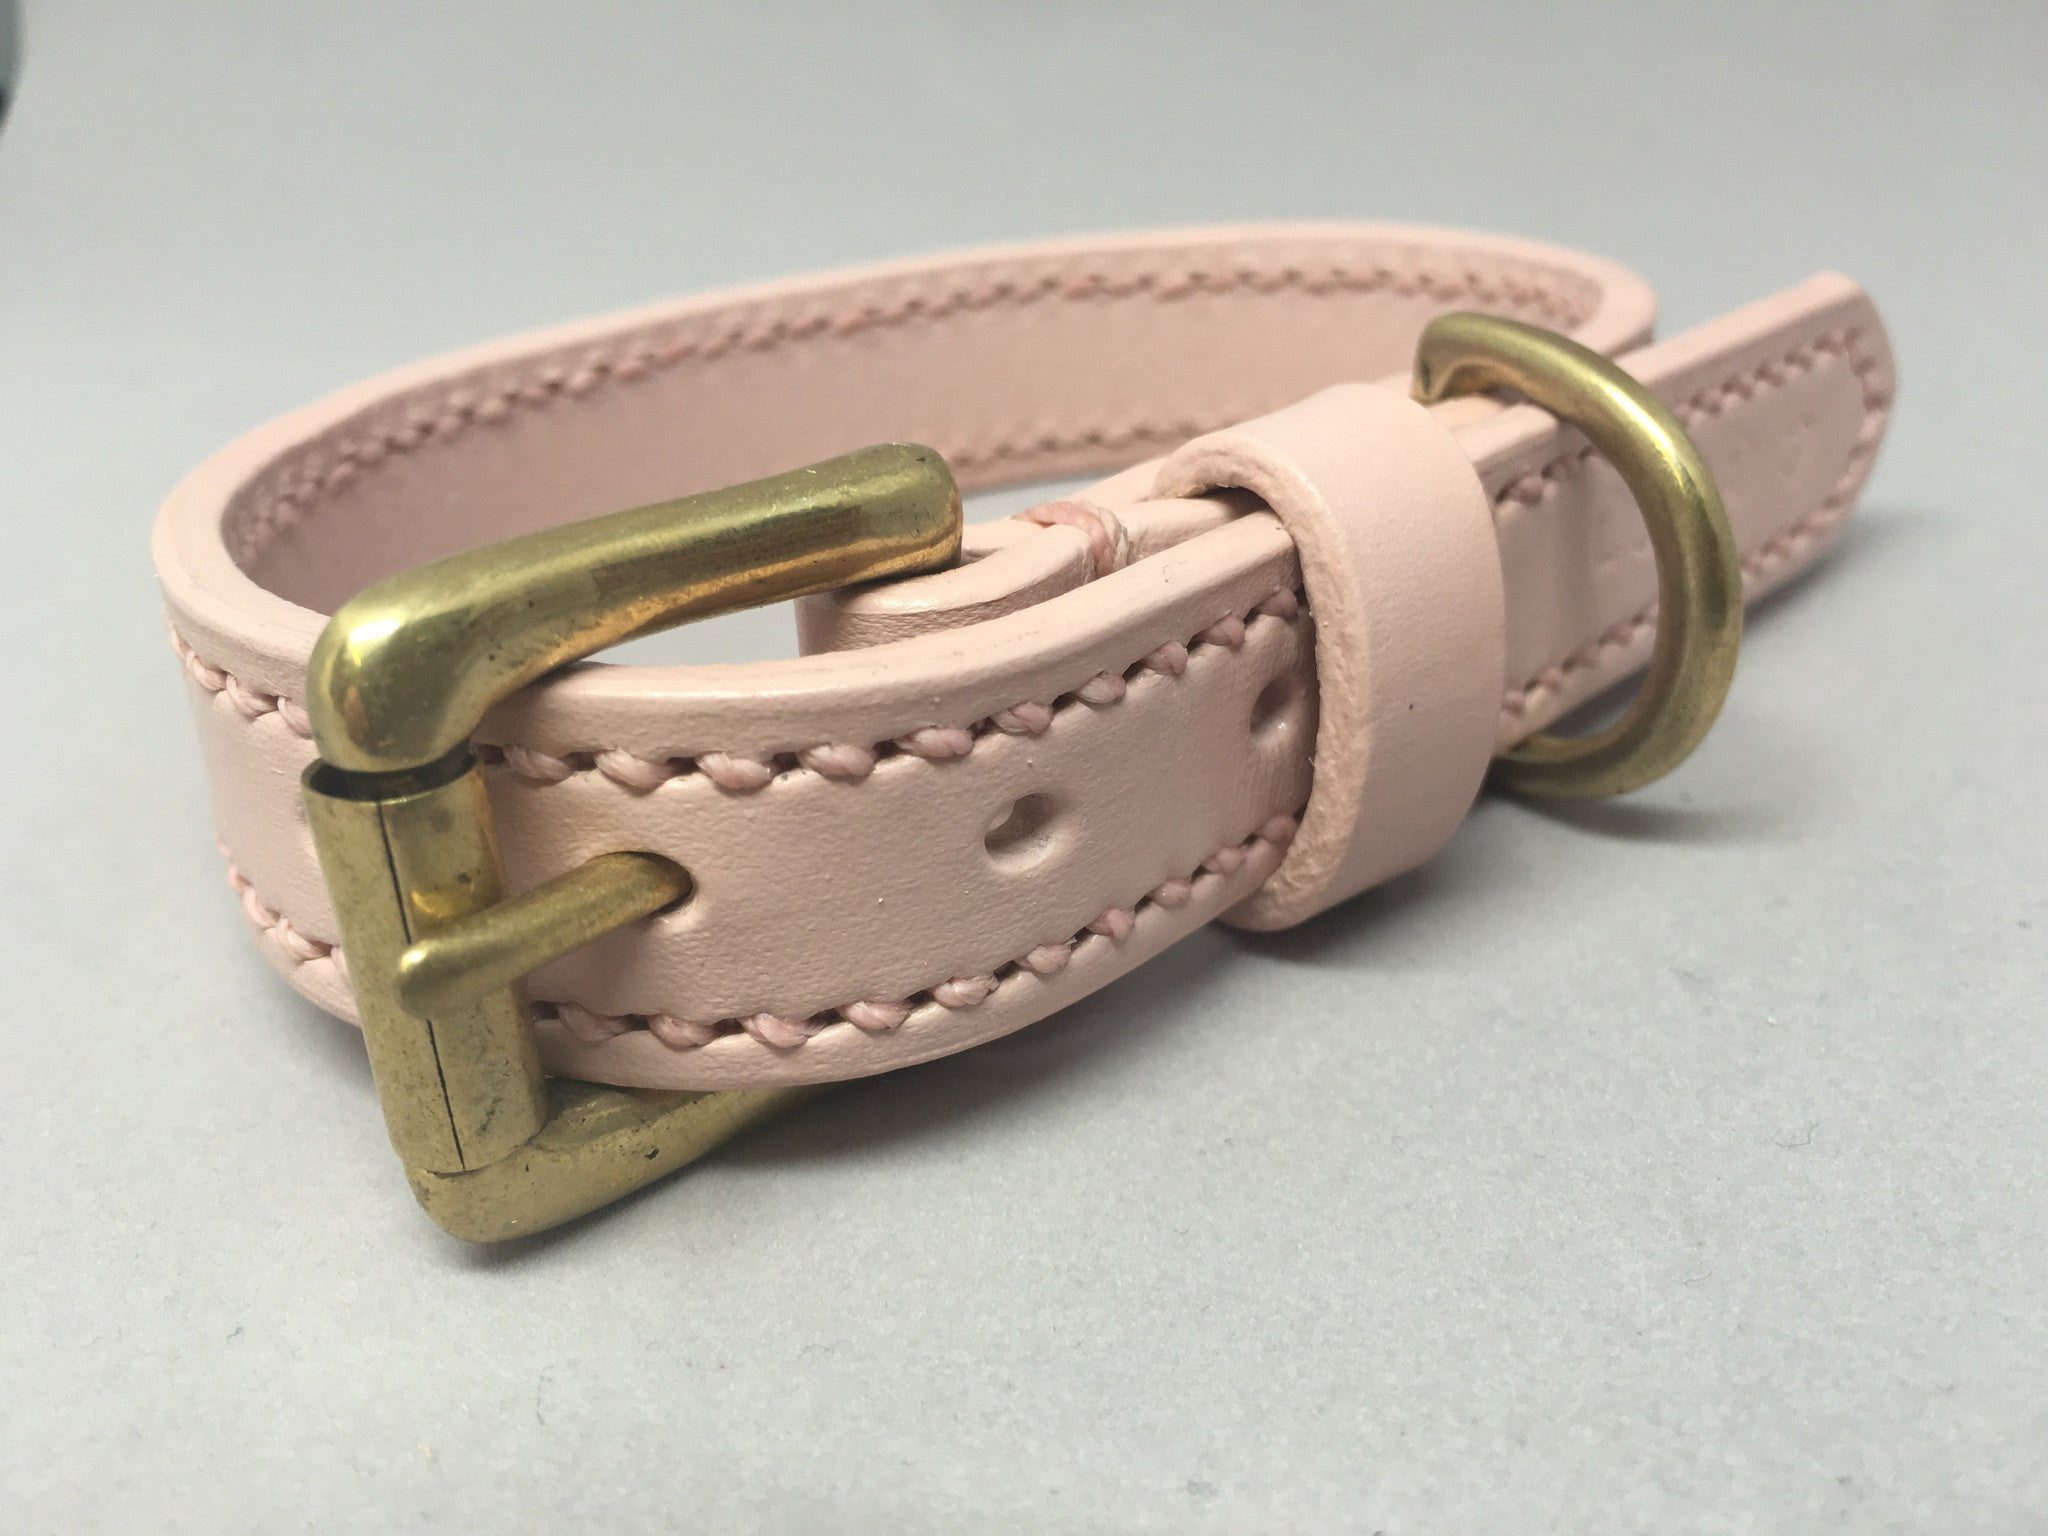 Pastel Pink Full Stitched Leather Dog Collar and Lead Set